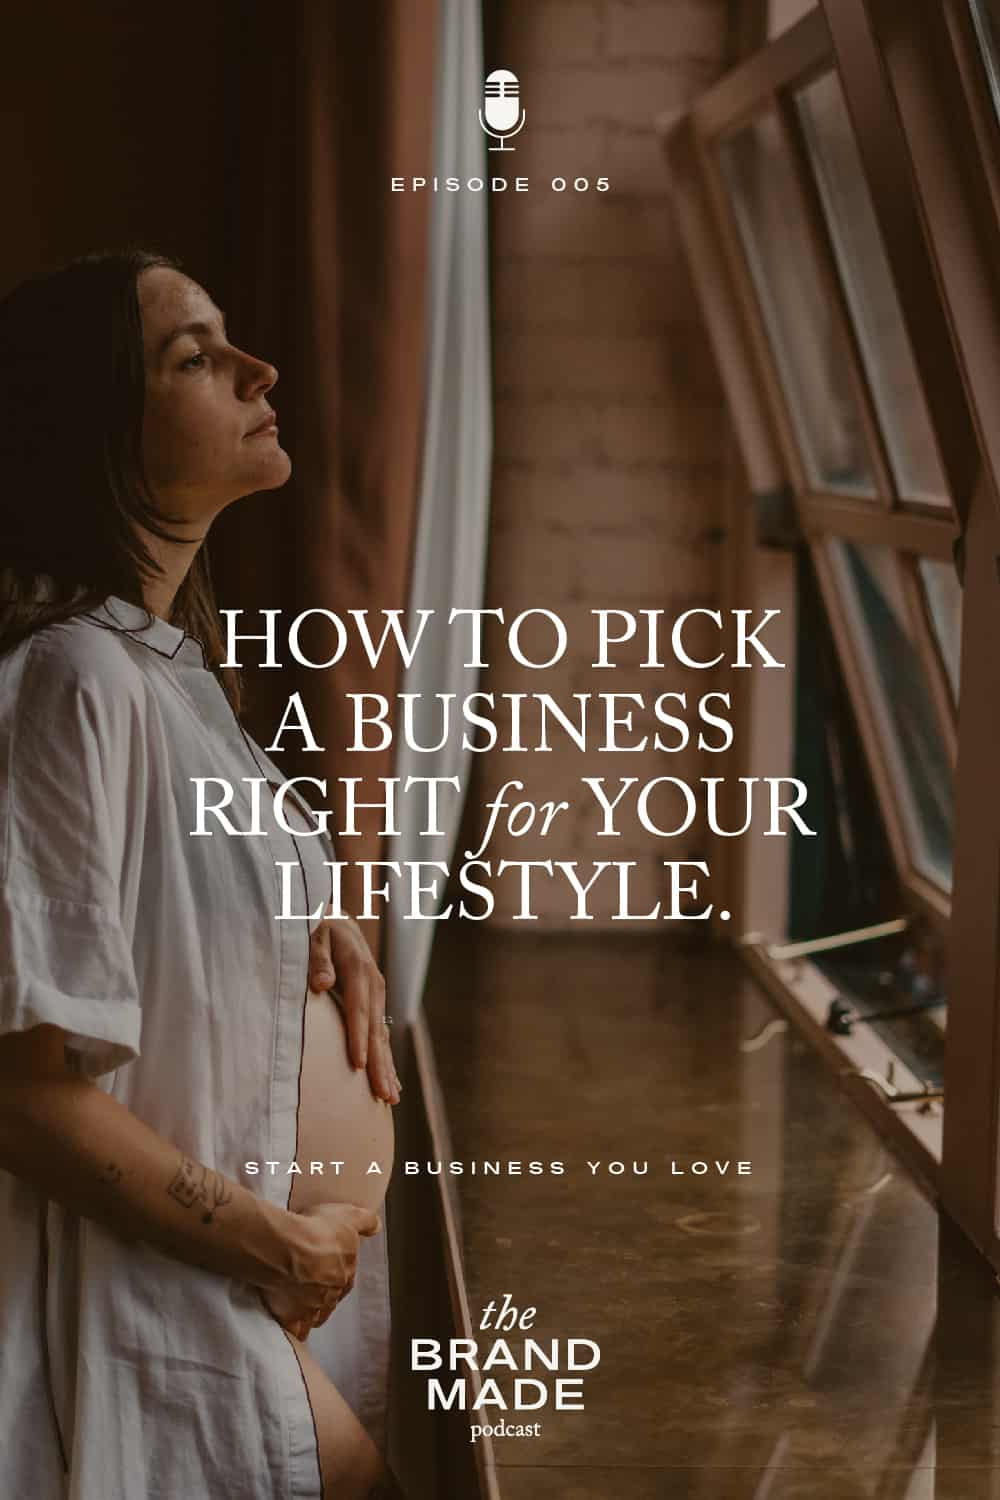 How to choose the right business for your lifestyle